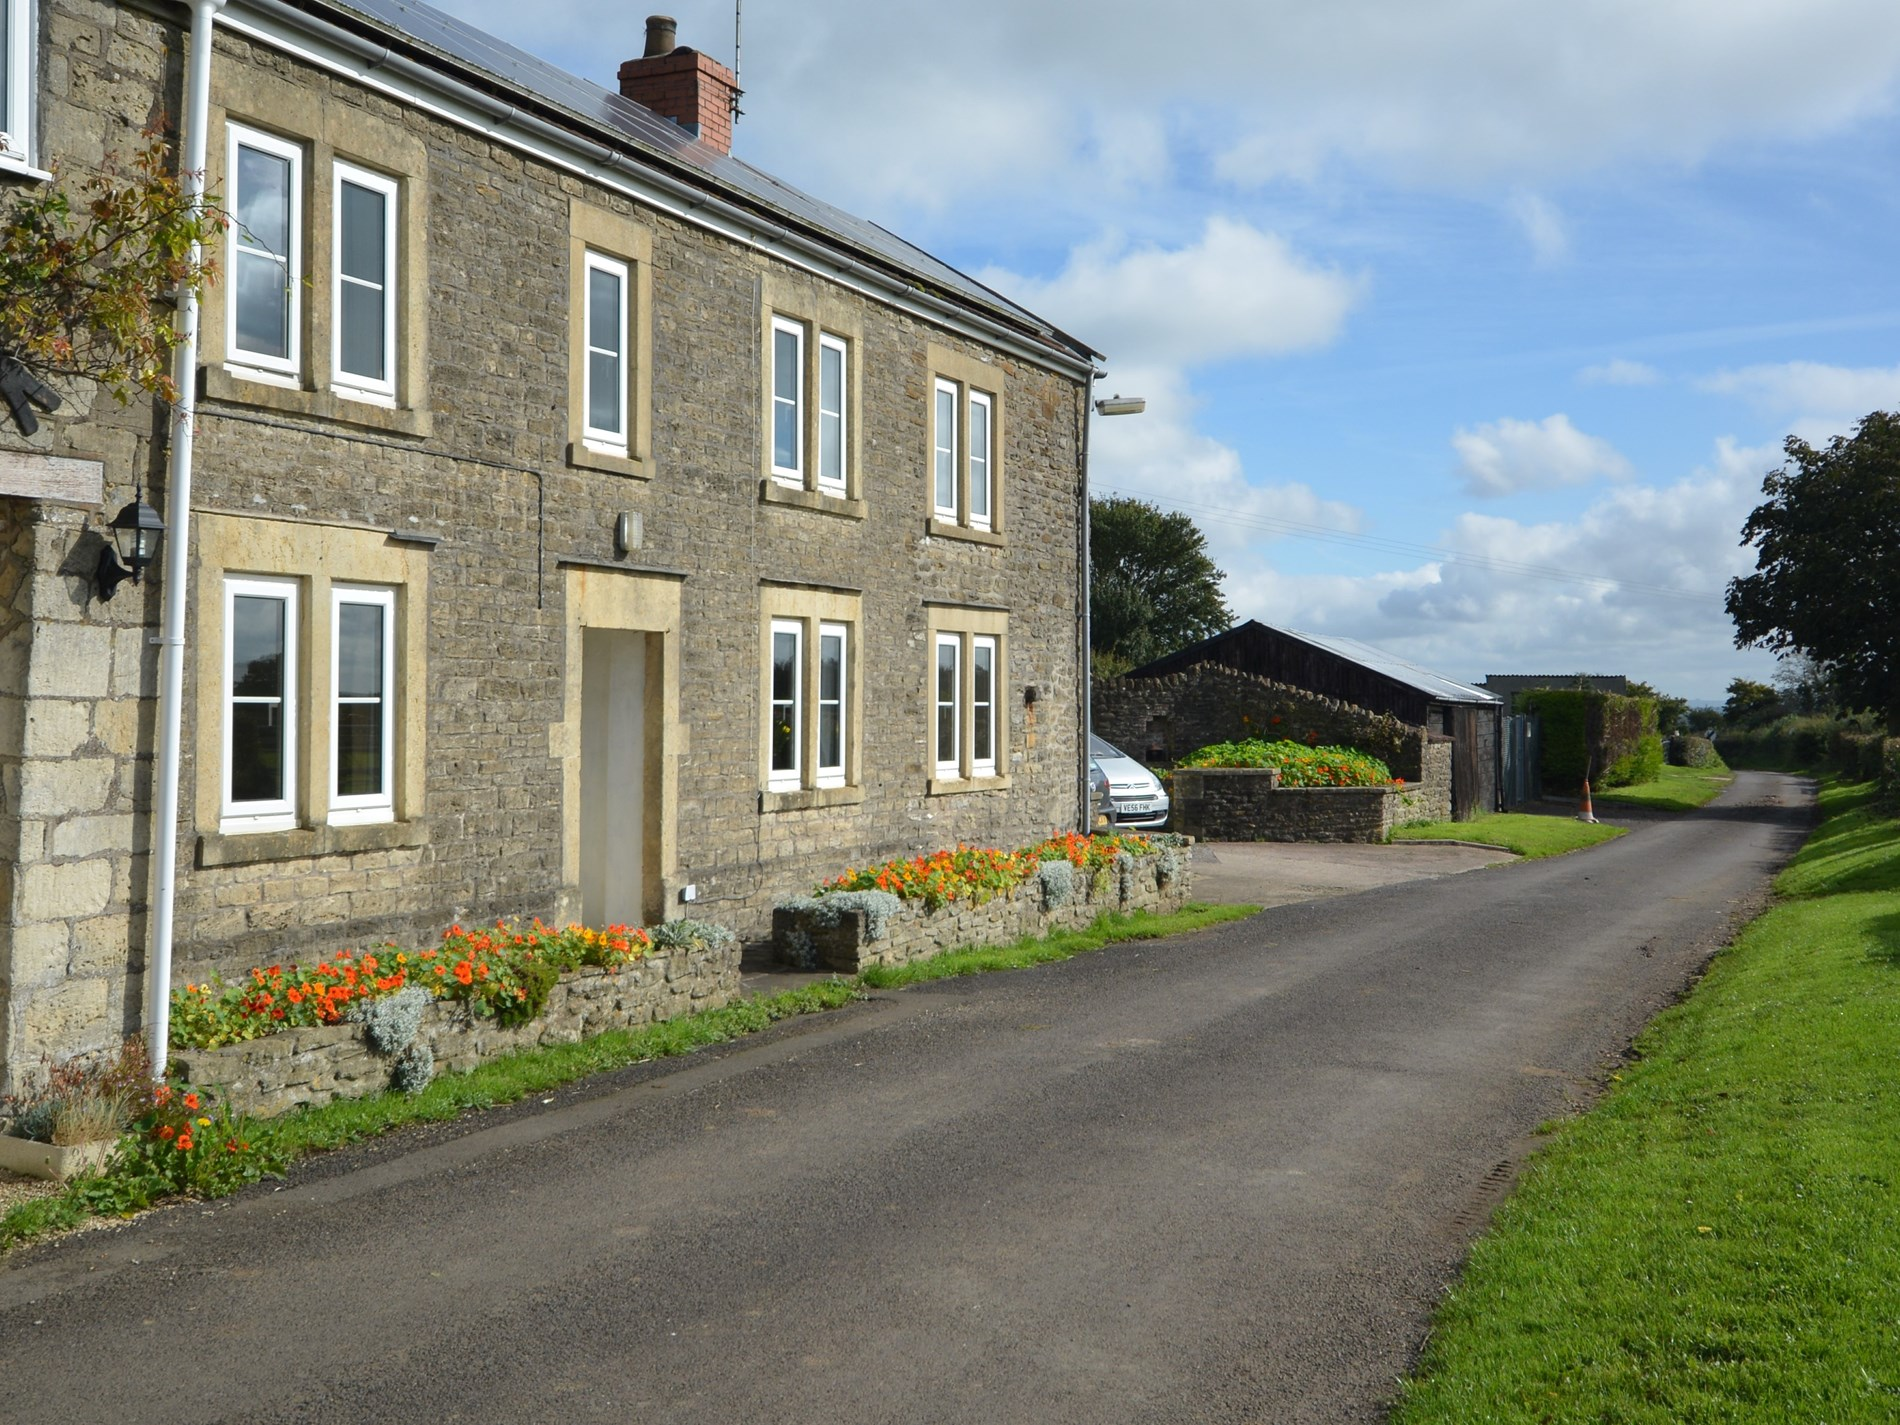 View to the front of the property located on a quiet lane